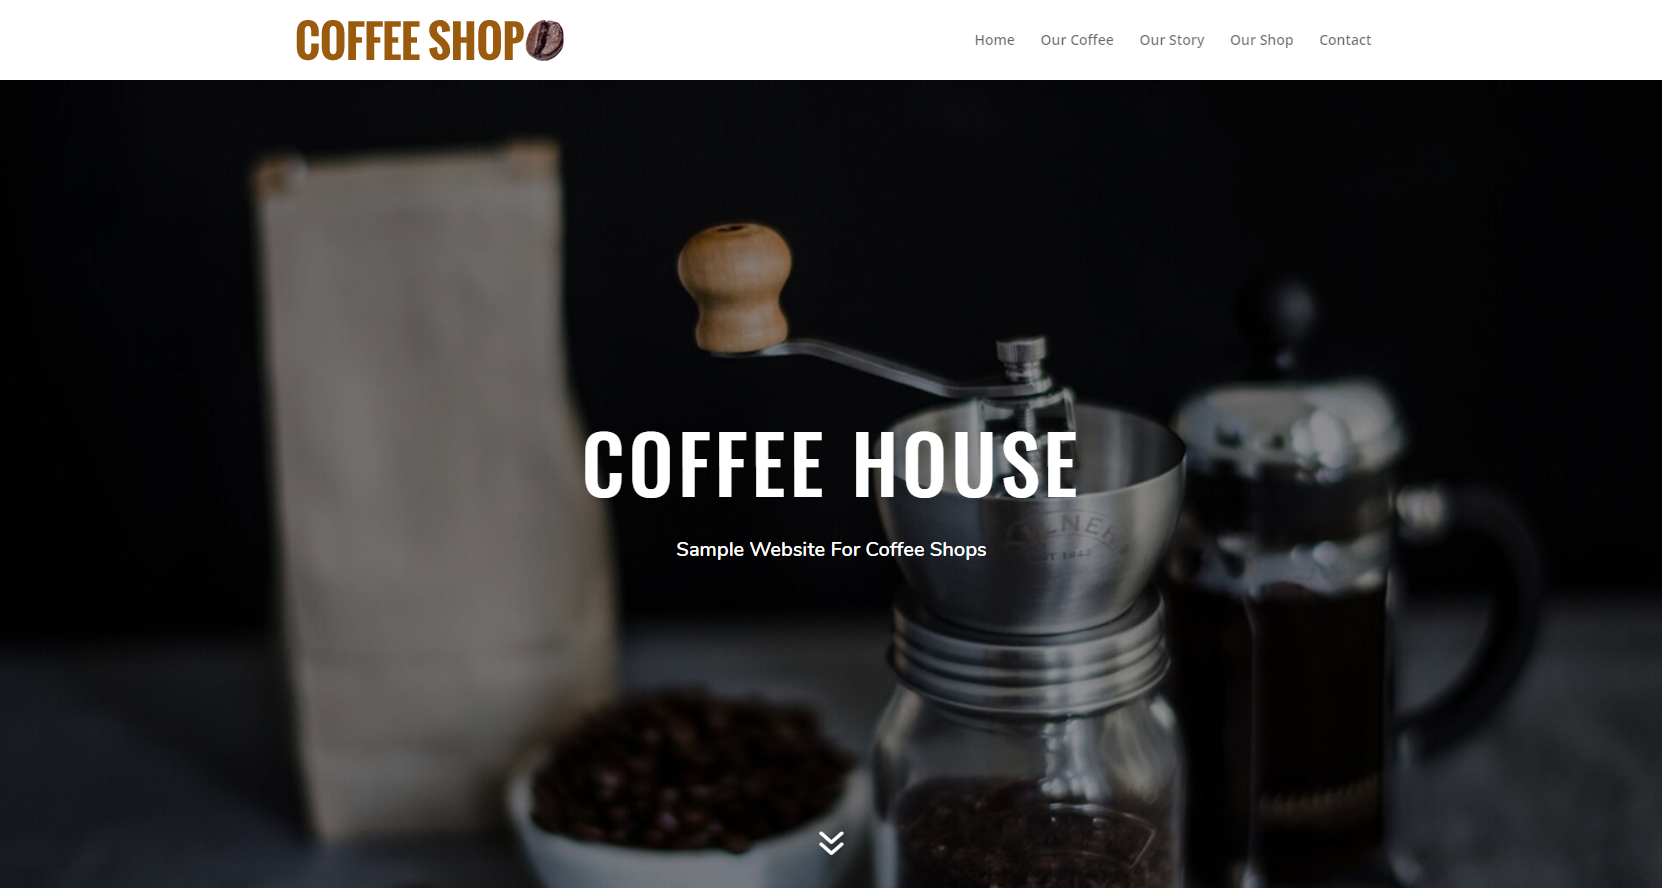 sample website for coffee shops